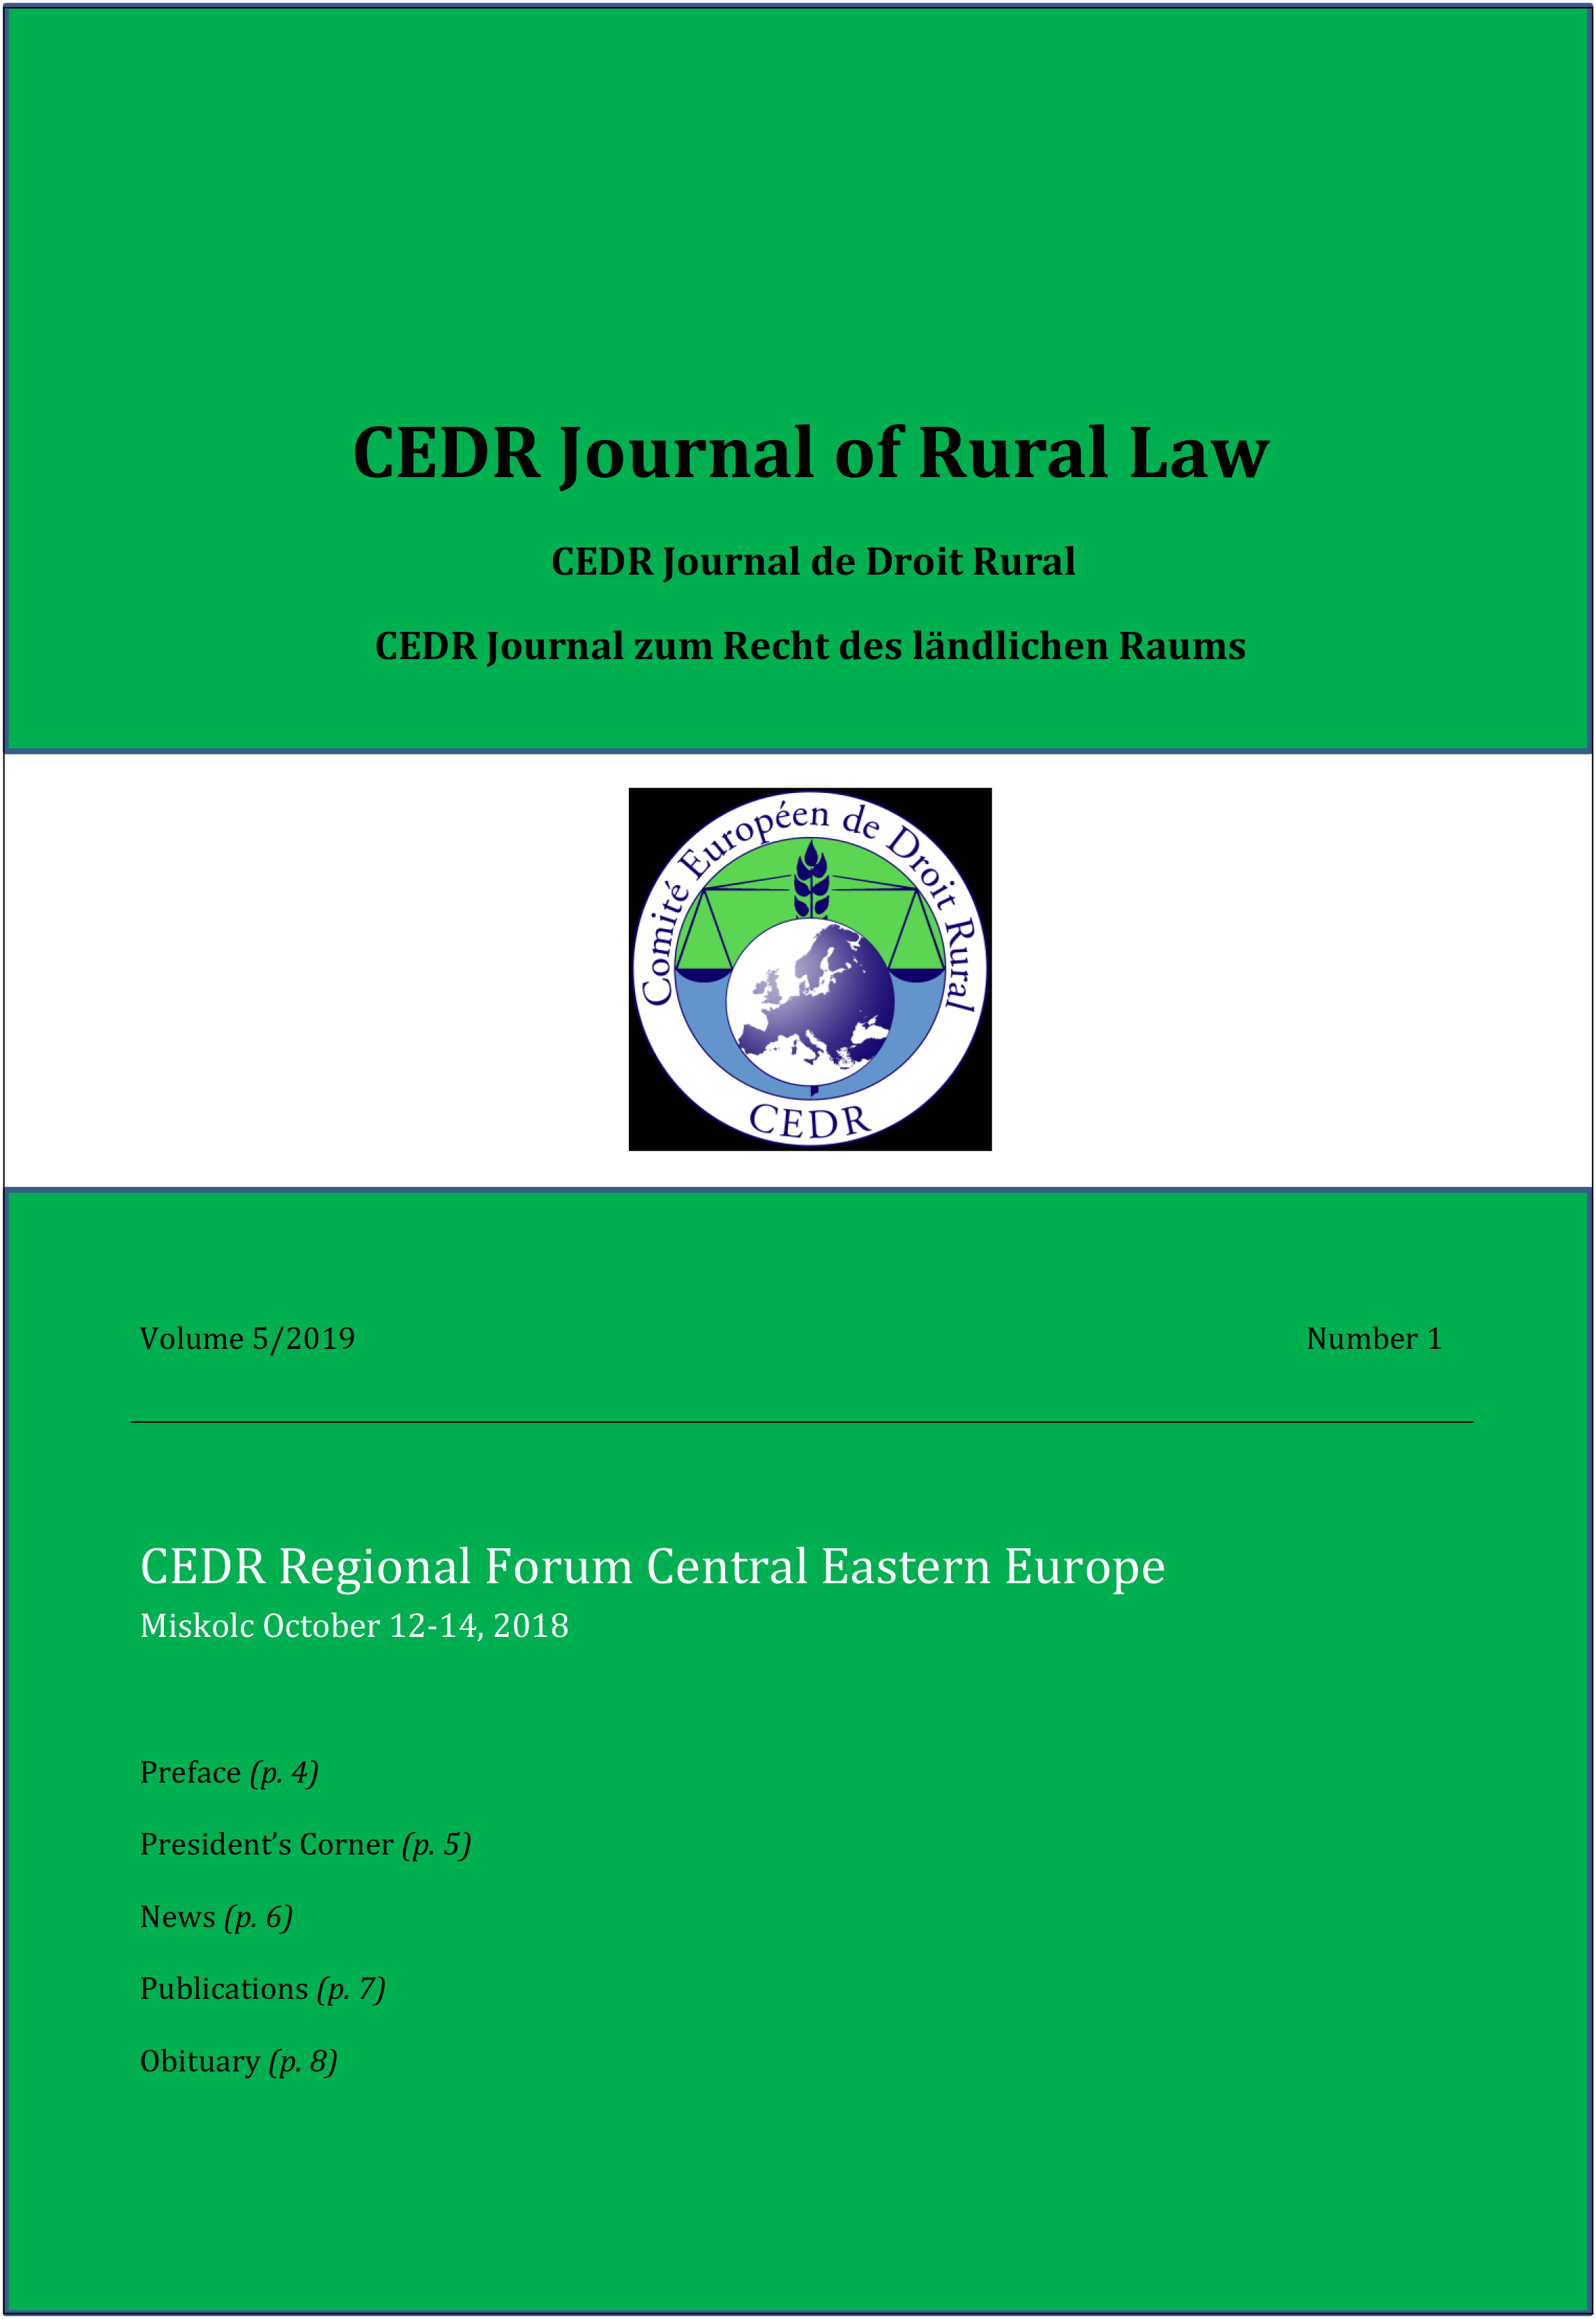 Journal of Rural Law Vol. 5 N°1, 2019